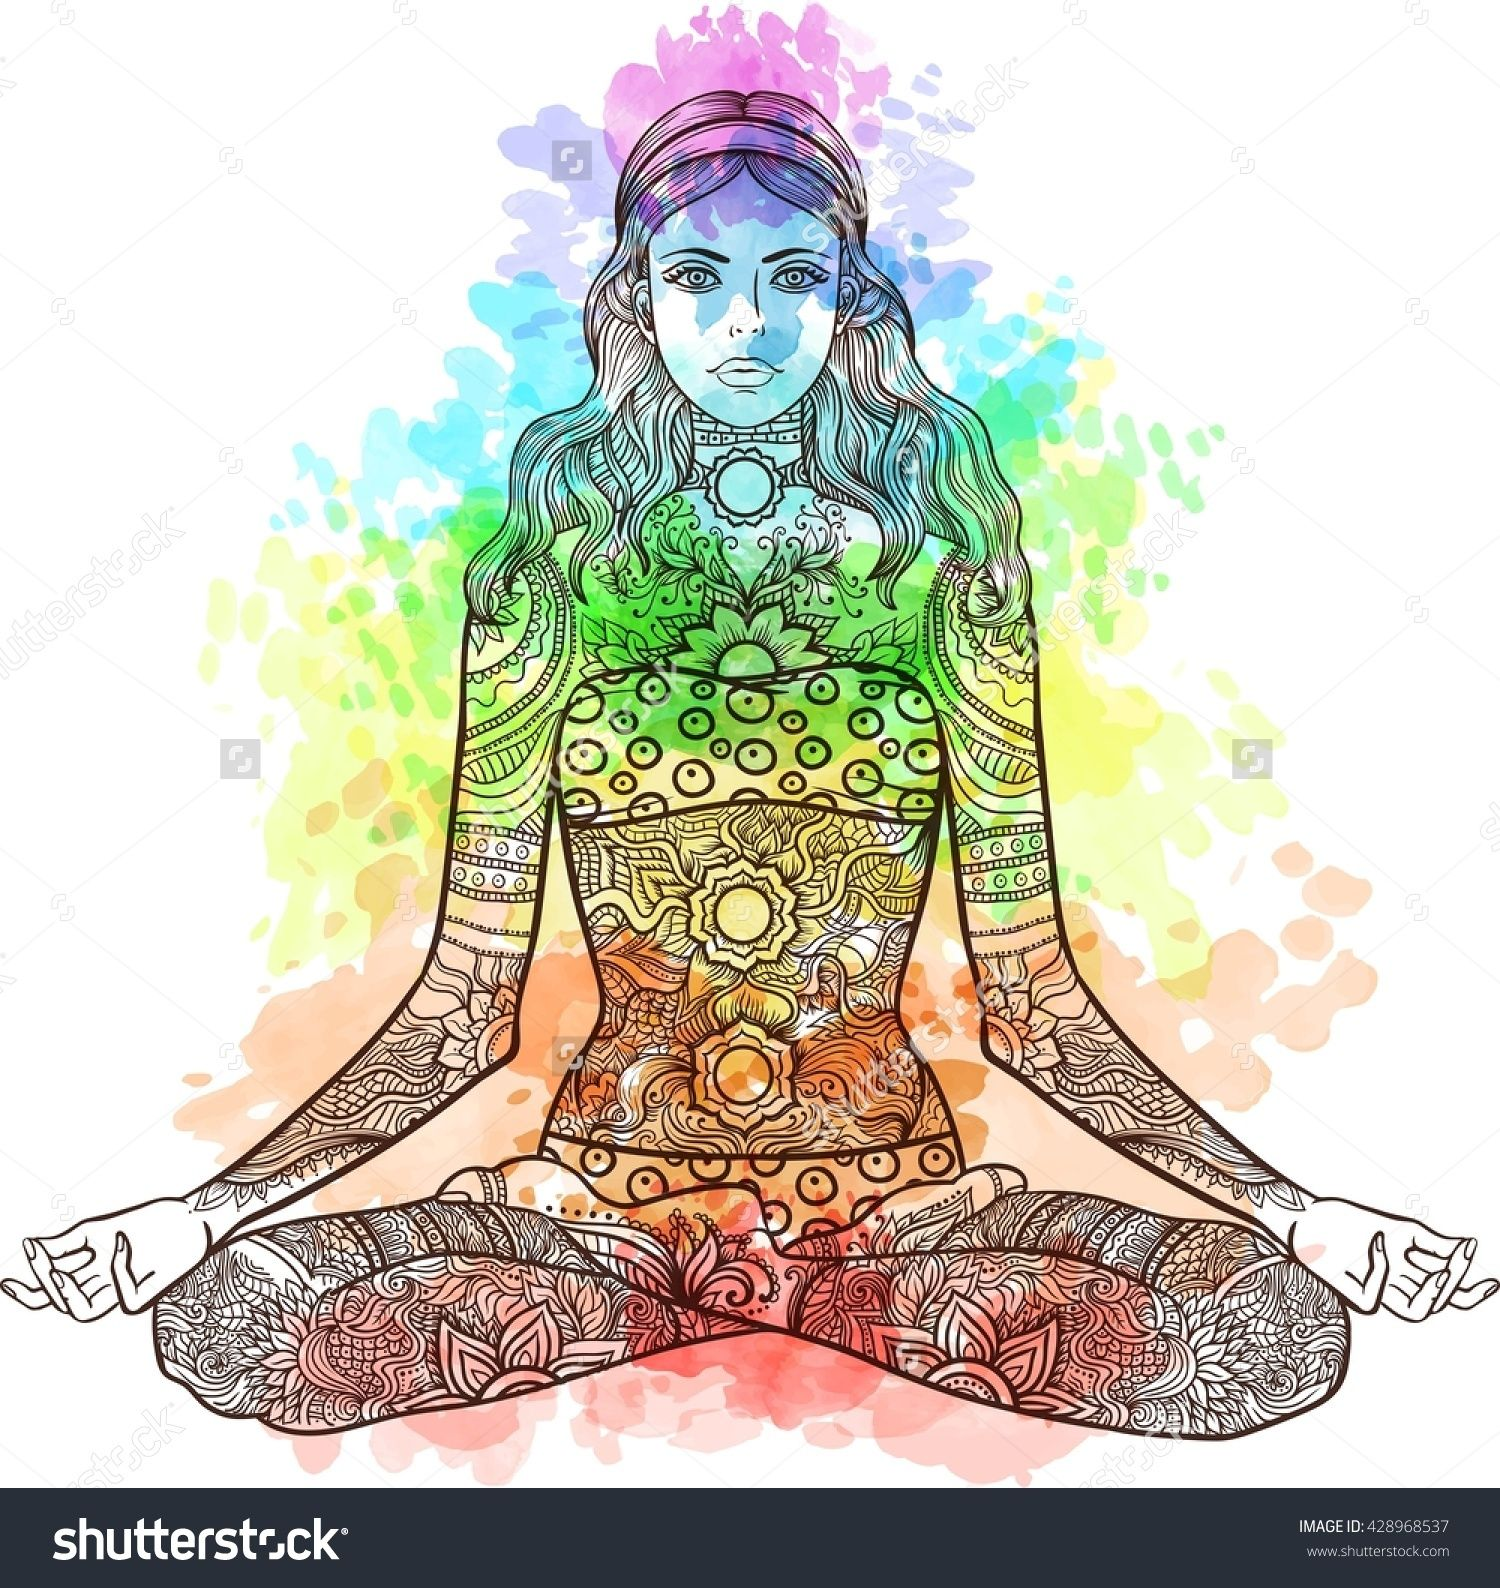 d50d26005aaae Woman Sitting In Yoga Lotus Pose With Tattoo Mehendi Zentangle Ornamental  Vintage Pattern. Meditation, Aura And Chakras. Vector Illustration.